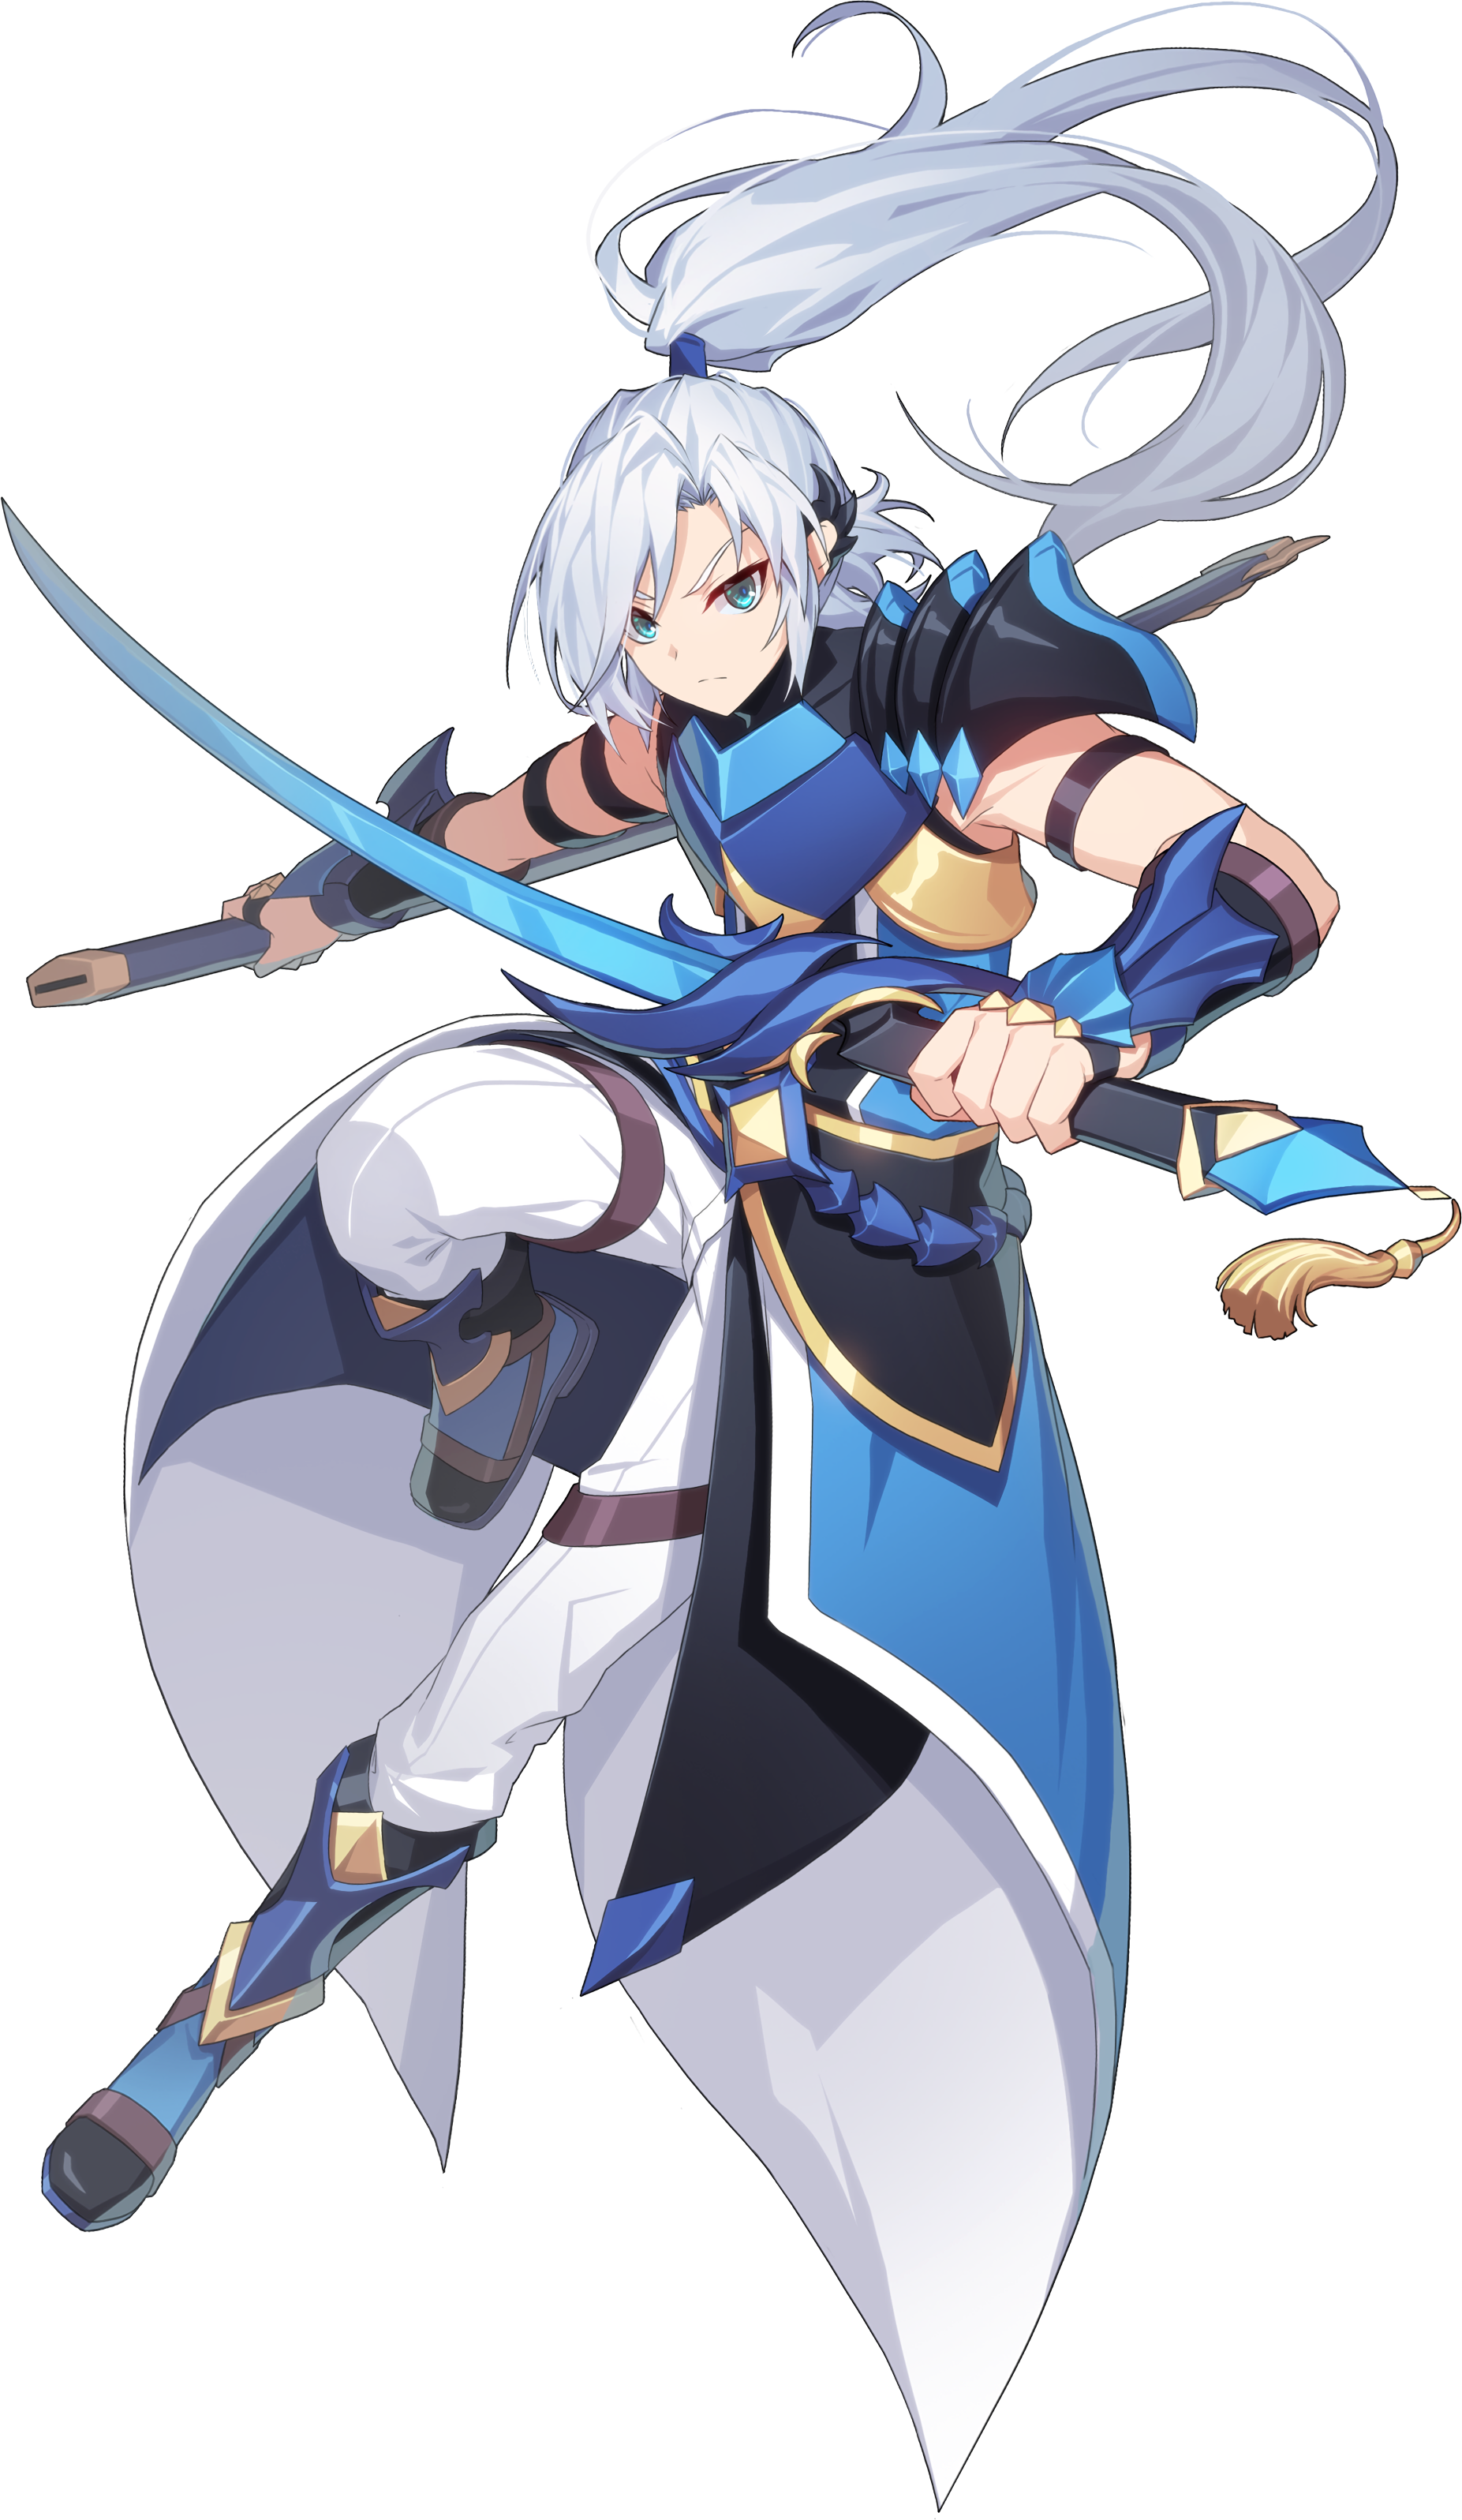 Lass/Grand Chase Dimensional Chaser | Anime warrior, Anime